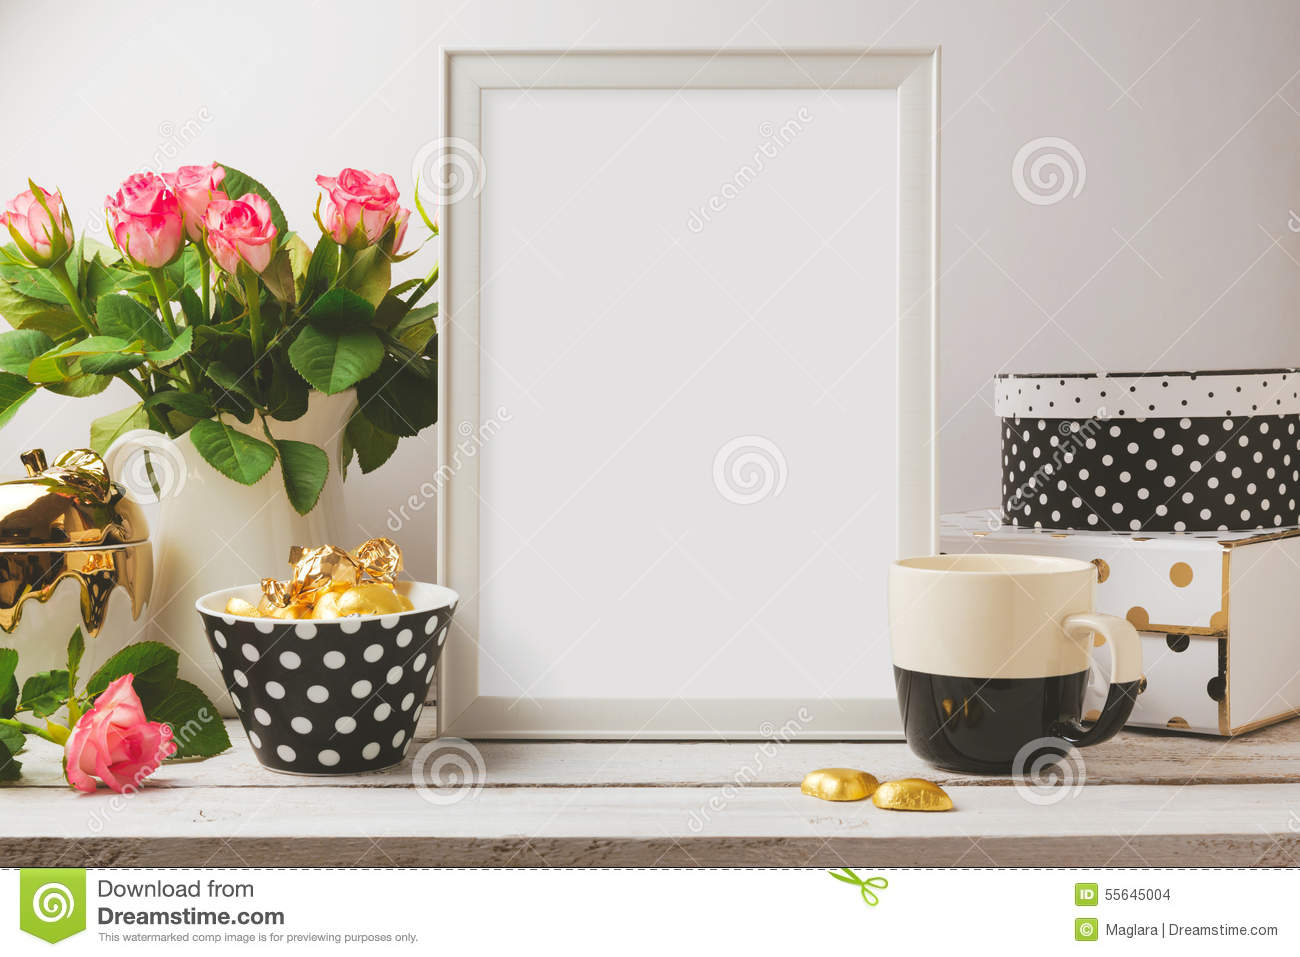 Poster Template Mock Up With Glamour And Elegant Feminine Objects Stock Photo Image 55645004